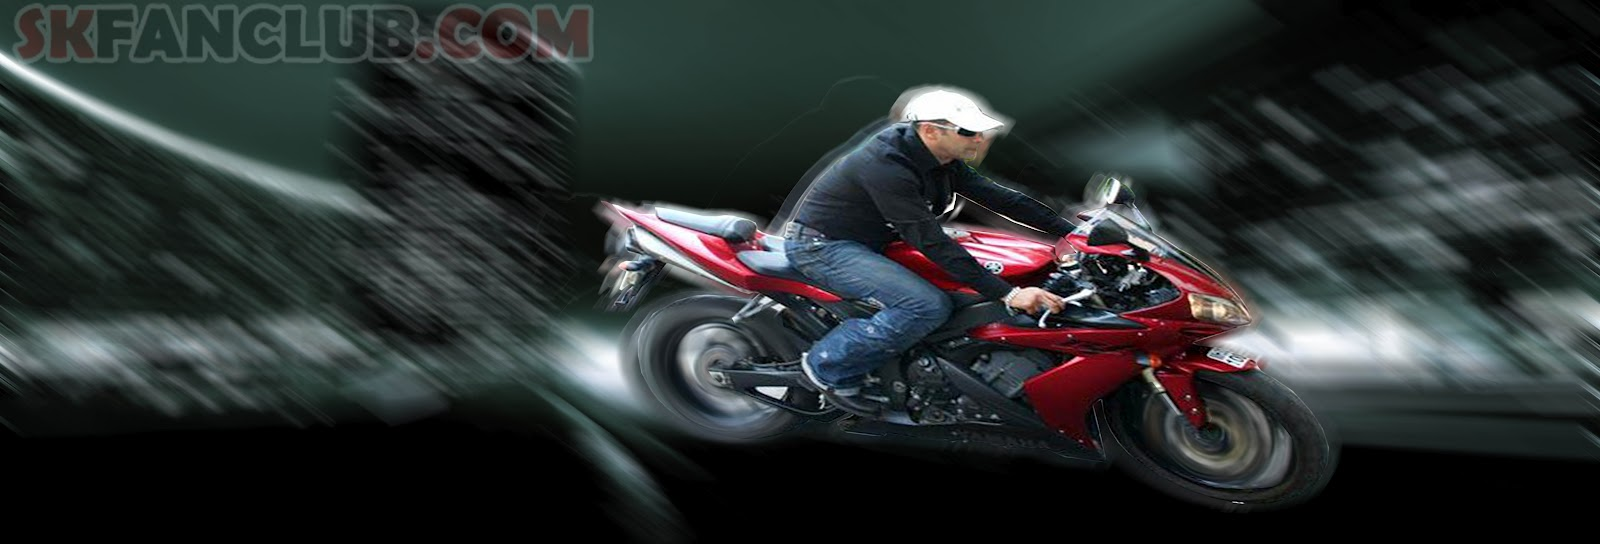 Salman Khan on Bike